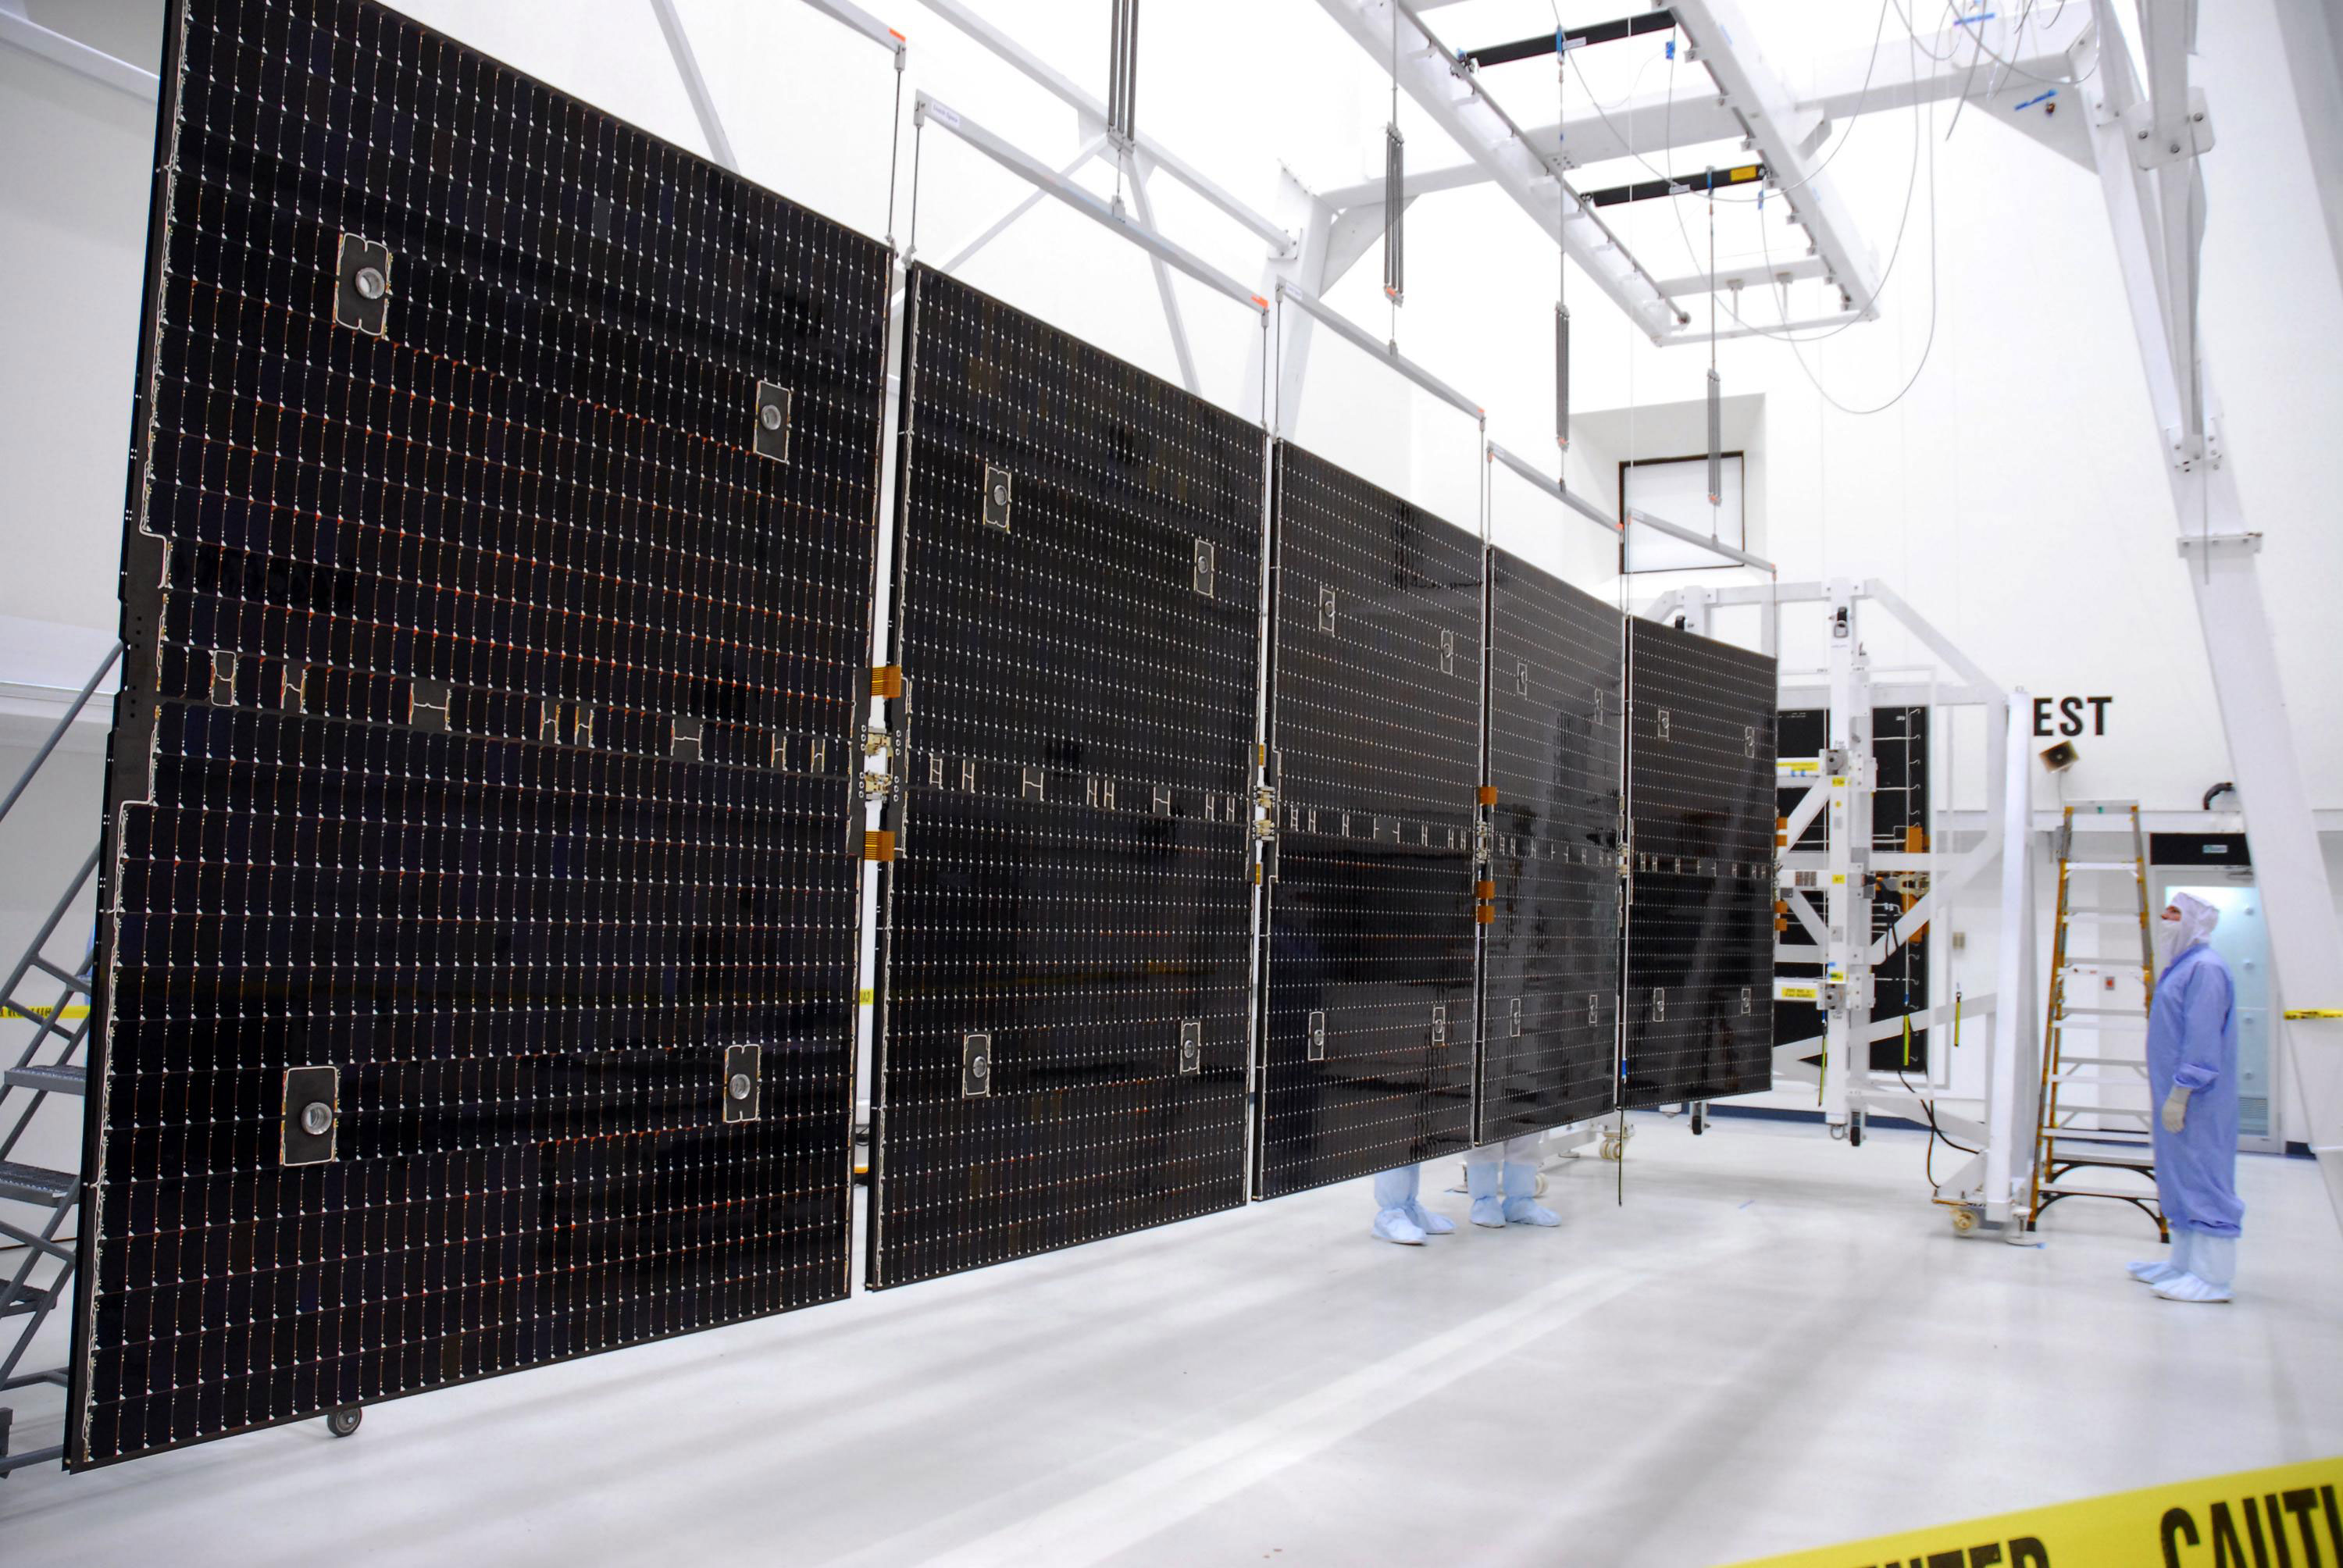 These are key in providing power for its ion propulsion system and for its instruments and on-board systems at a distance of almost 3 AU from the Sun. With its solar arrays fully extended, the spacecraft is 19.7 meters (65ft) long. The solar arrays have a total area of 36.4 square metres (392sqft). Credit: NASA/George Shelton